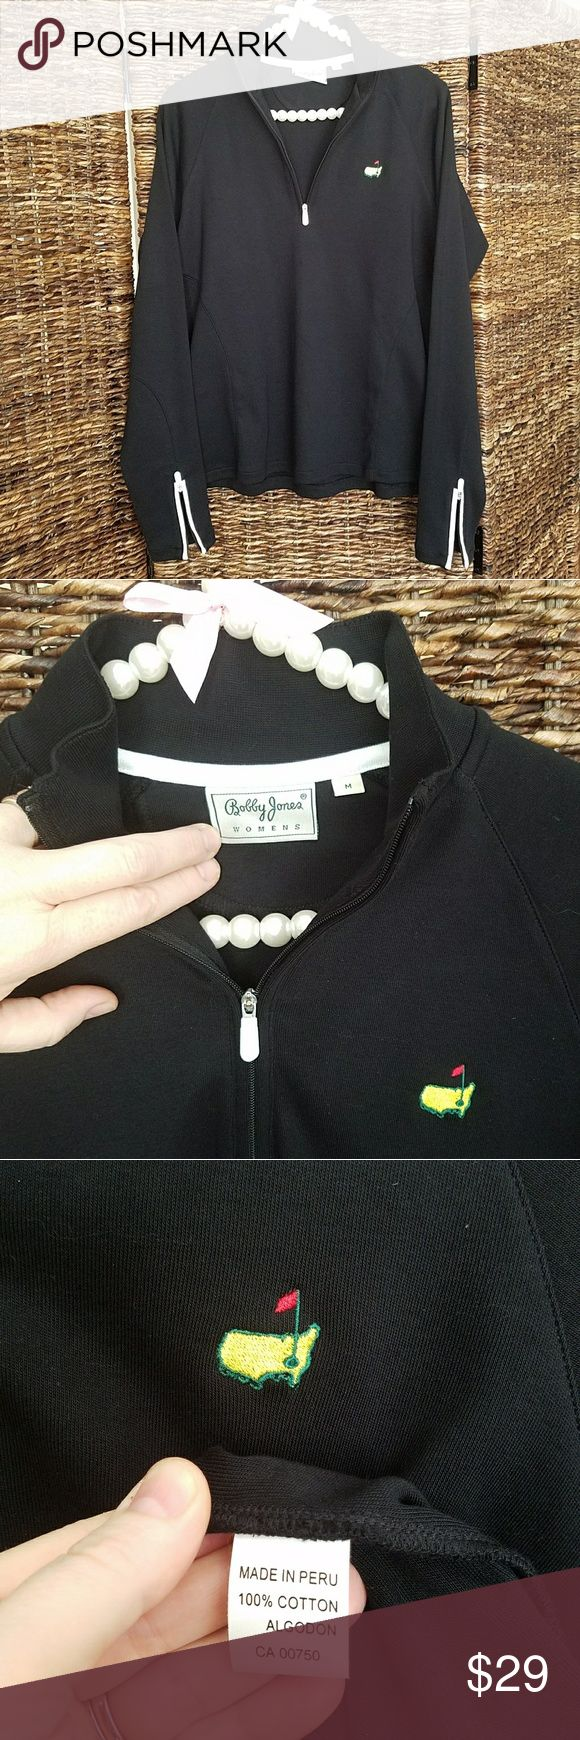 Bobby Jones women's pullover jacket Long sleeve athletic pullover, ribbed mock neck, 1/4 zip with zip sleeves in contrast white piping at wrists. 100% cotton, made in Peru.  Officially licensed with embroidered Augusta Masters golf graphic. A great layering piece on a windy or chilly day. Machine wash cold, dry flat.  No snags, stains or imperfections.  EUC, smoke free home. Bobby Jones Tops